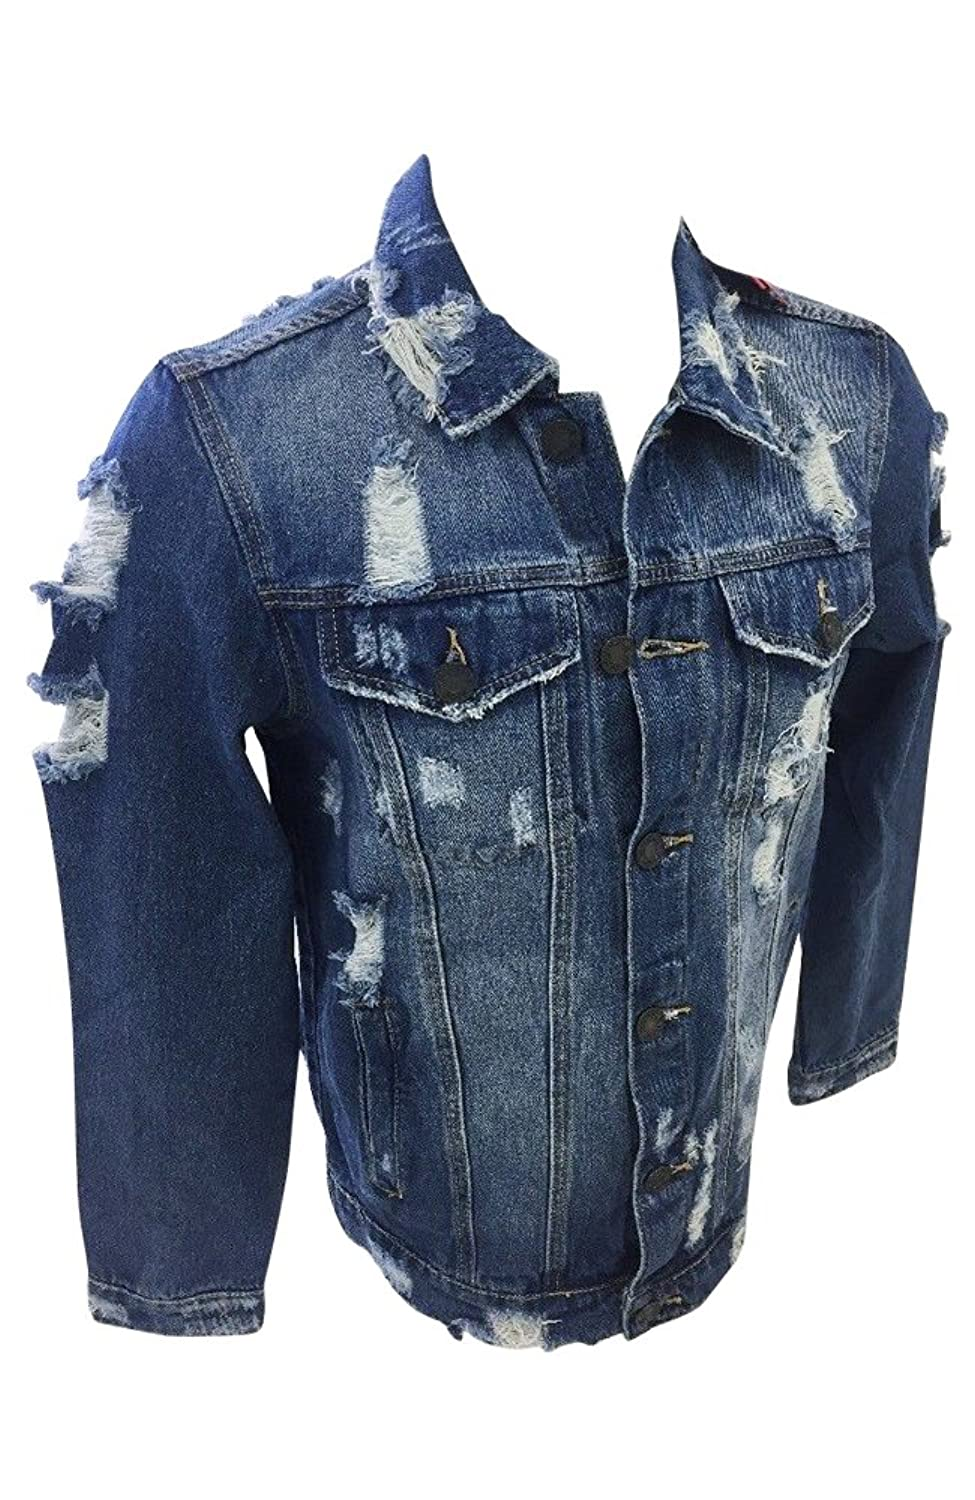 175cce83 Online Cheap wholesale Mens Victorious Denim Jean Jacket Dark Indigo Blue  Vintage Distressed Wash DK100 Denim Suppliers